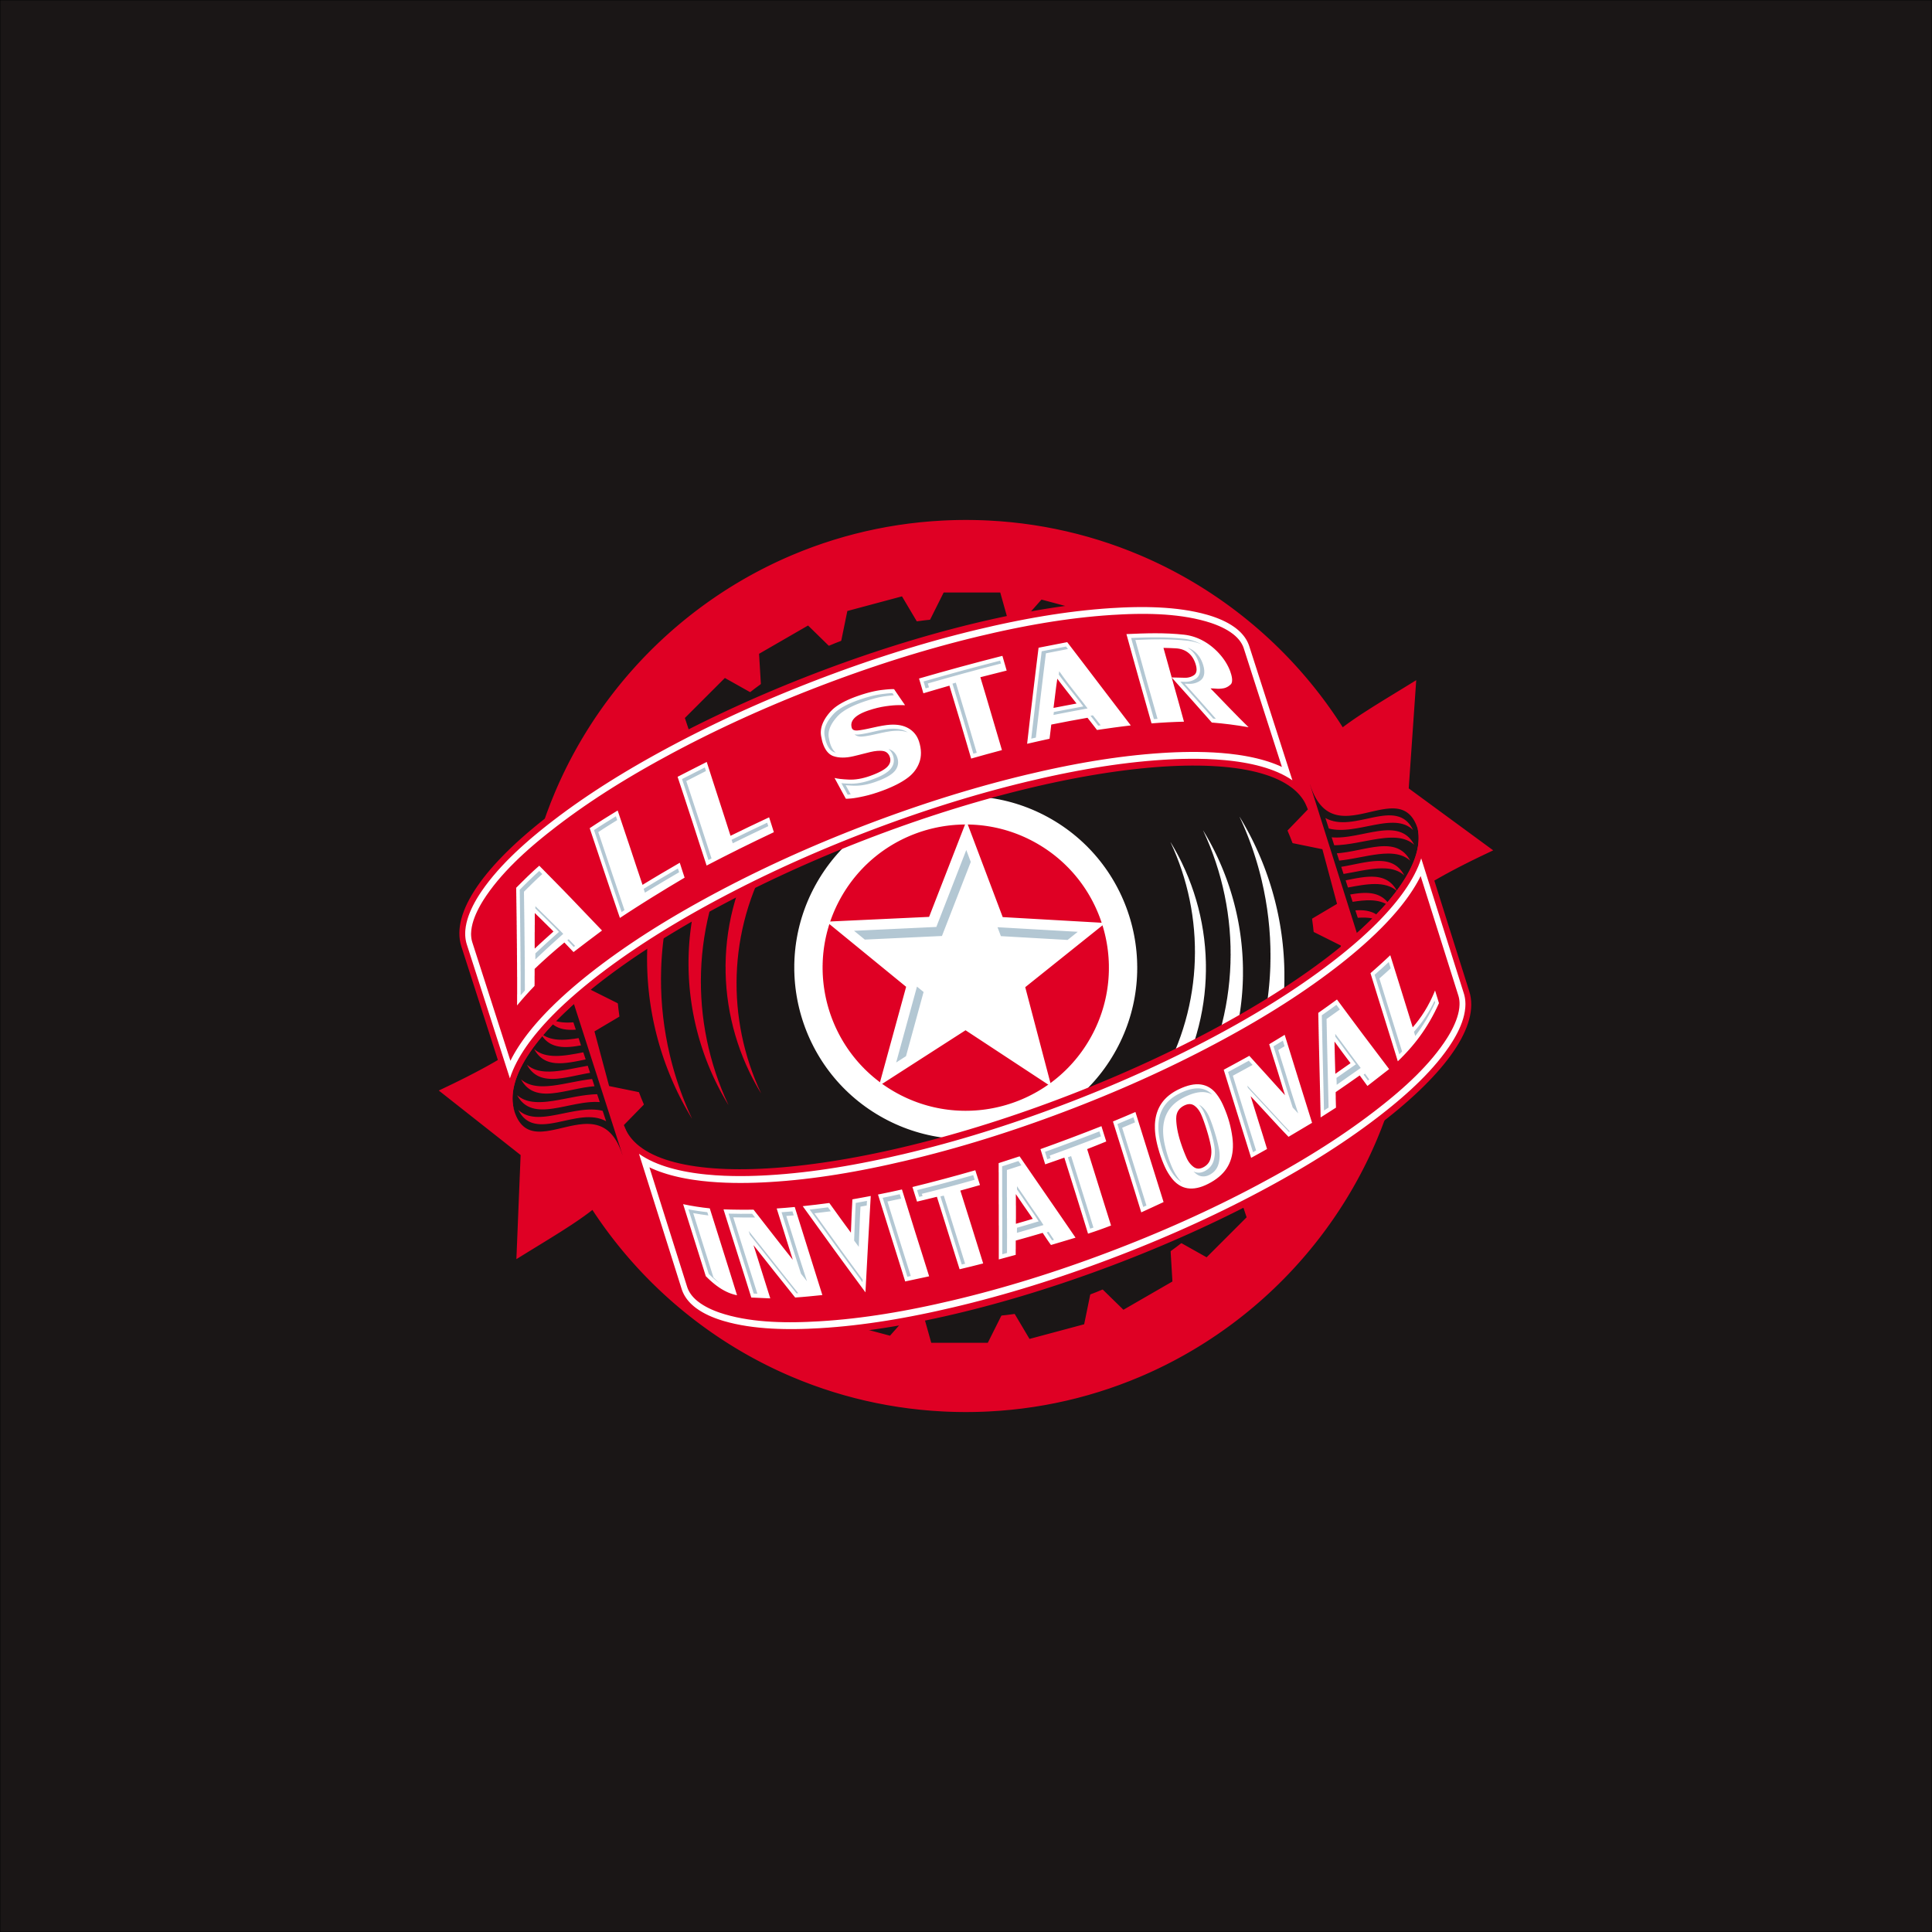 All Star Invitational 005